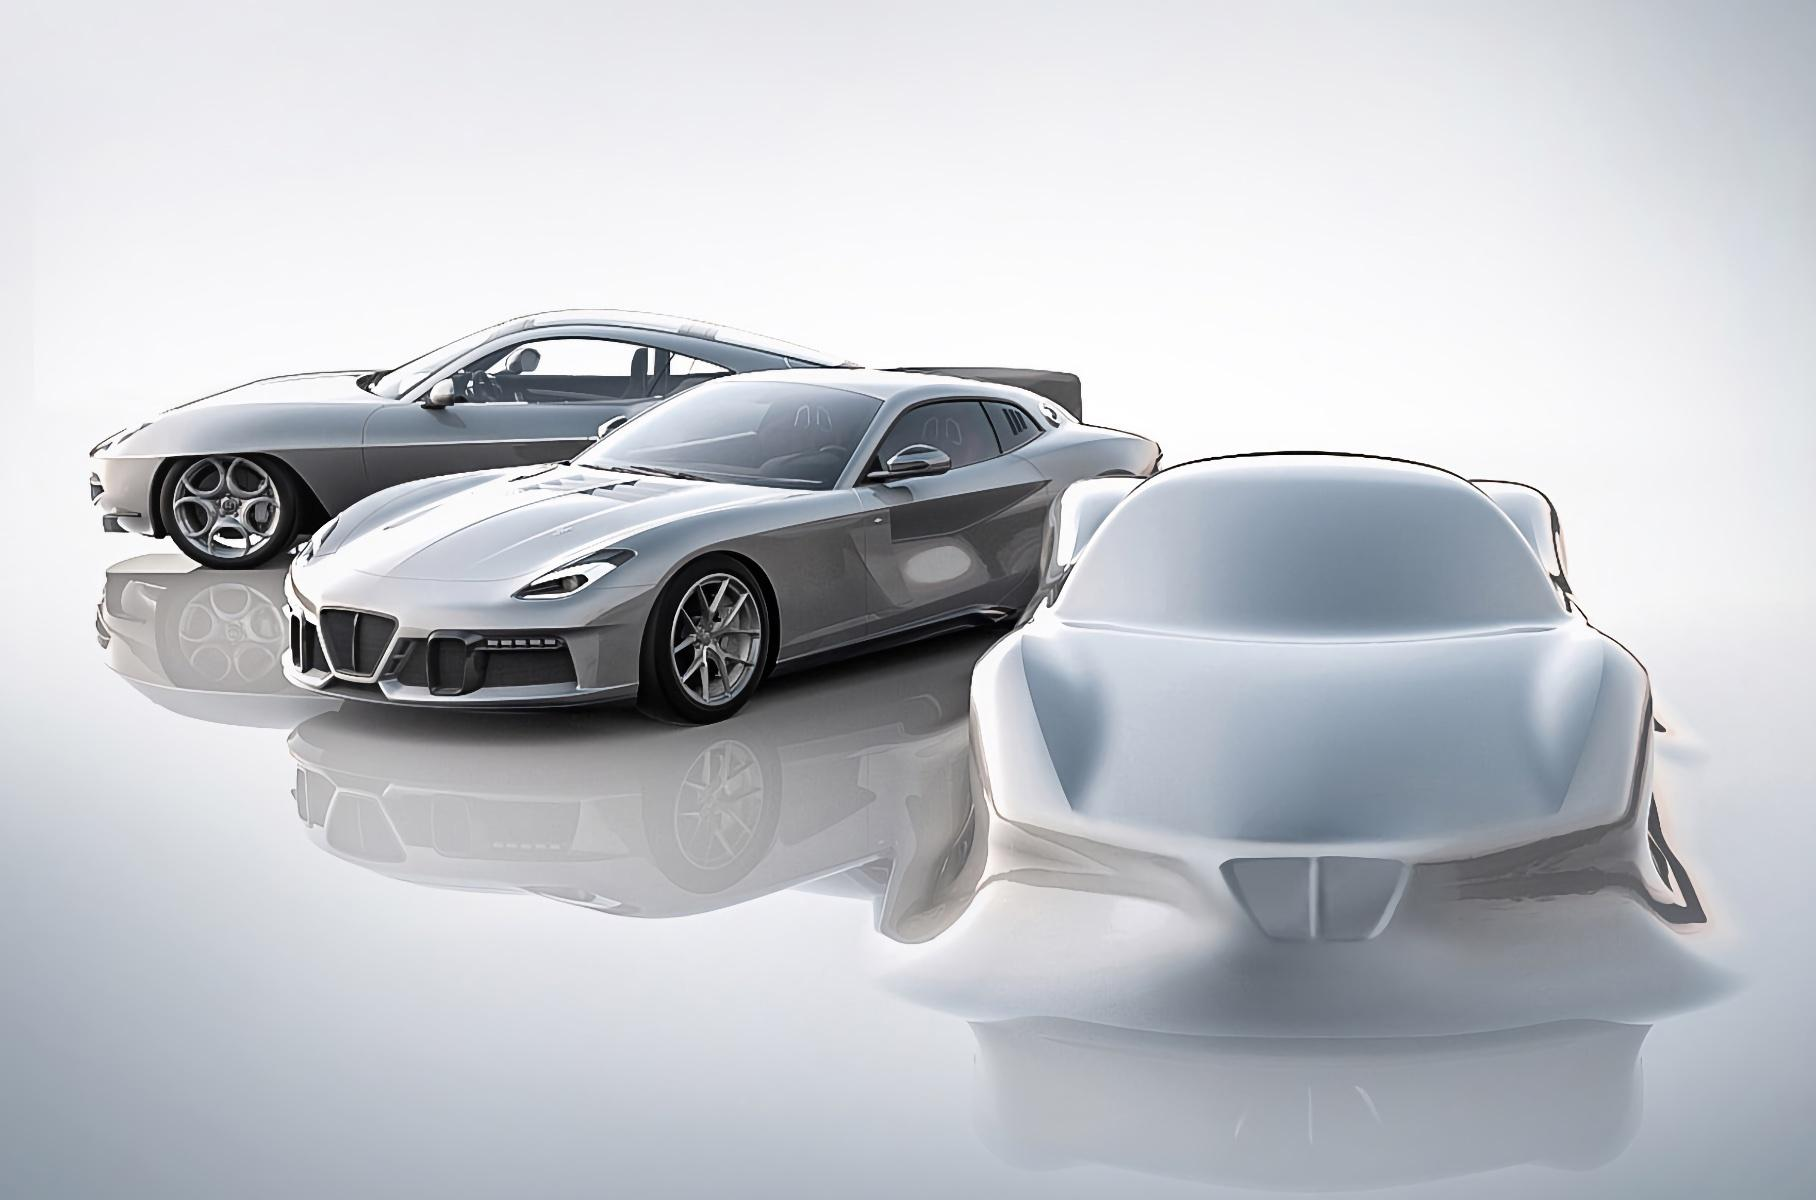 Italian coachbuilder Carrozzeria Touring Superleggera will be celebrating its 95th birthday this year, and plans to build its first mid-engine coupe to mark the milestone.